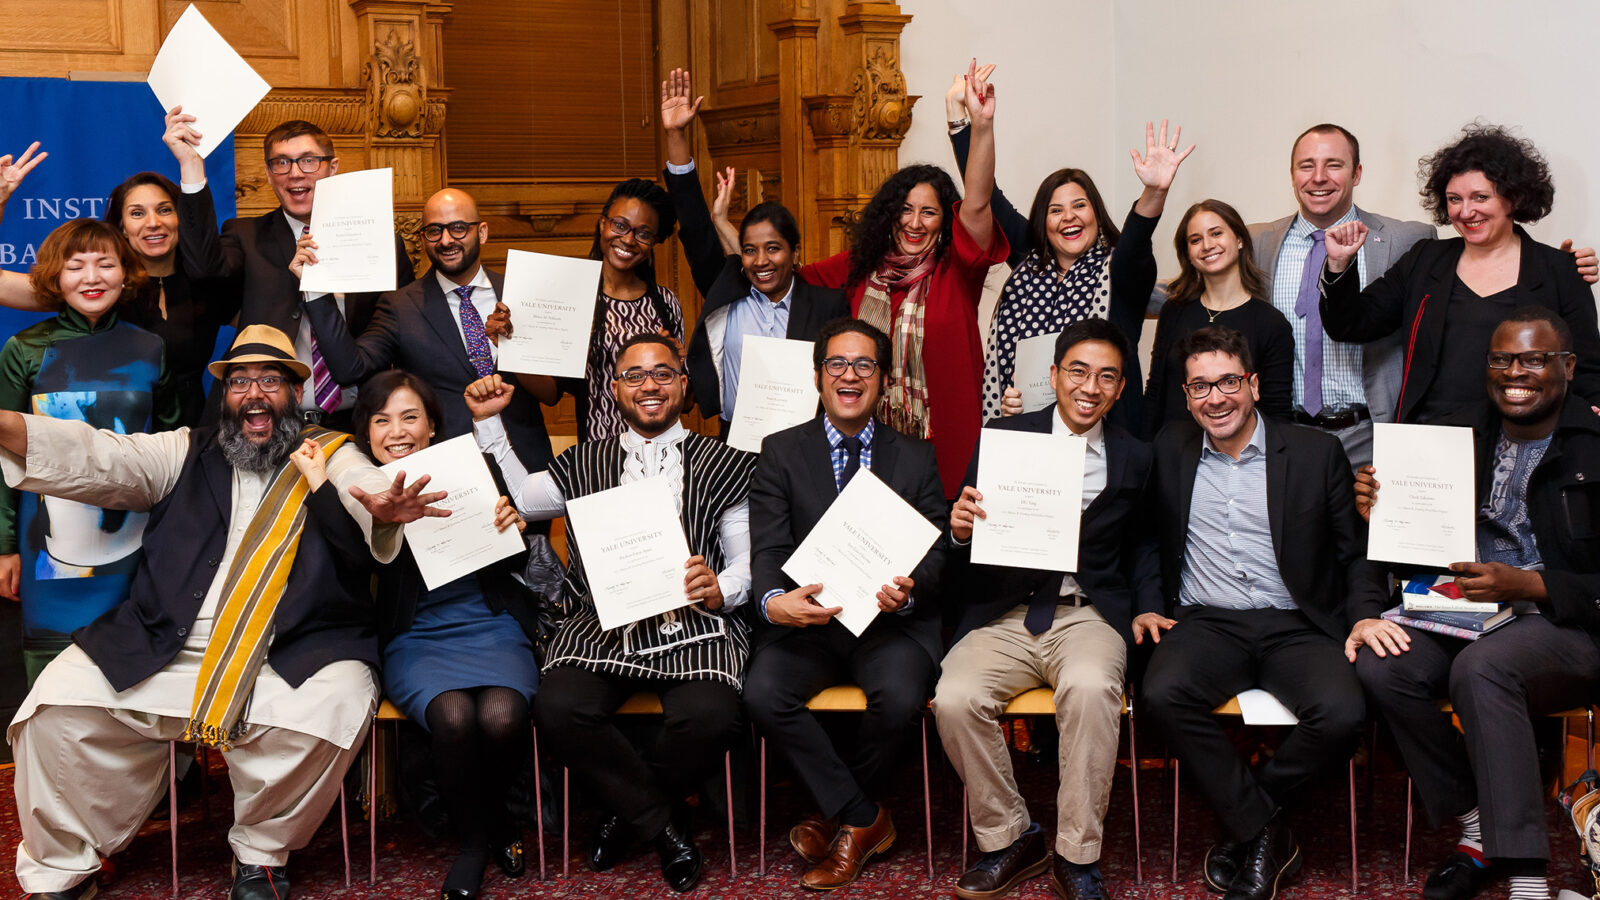 2017 Fellows wrap up time at Yale photo